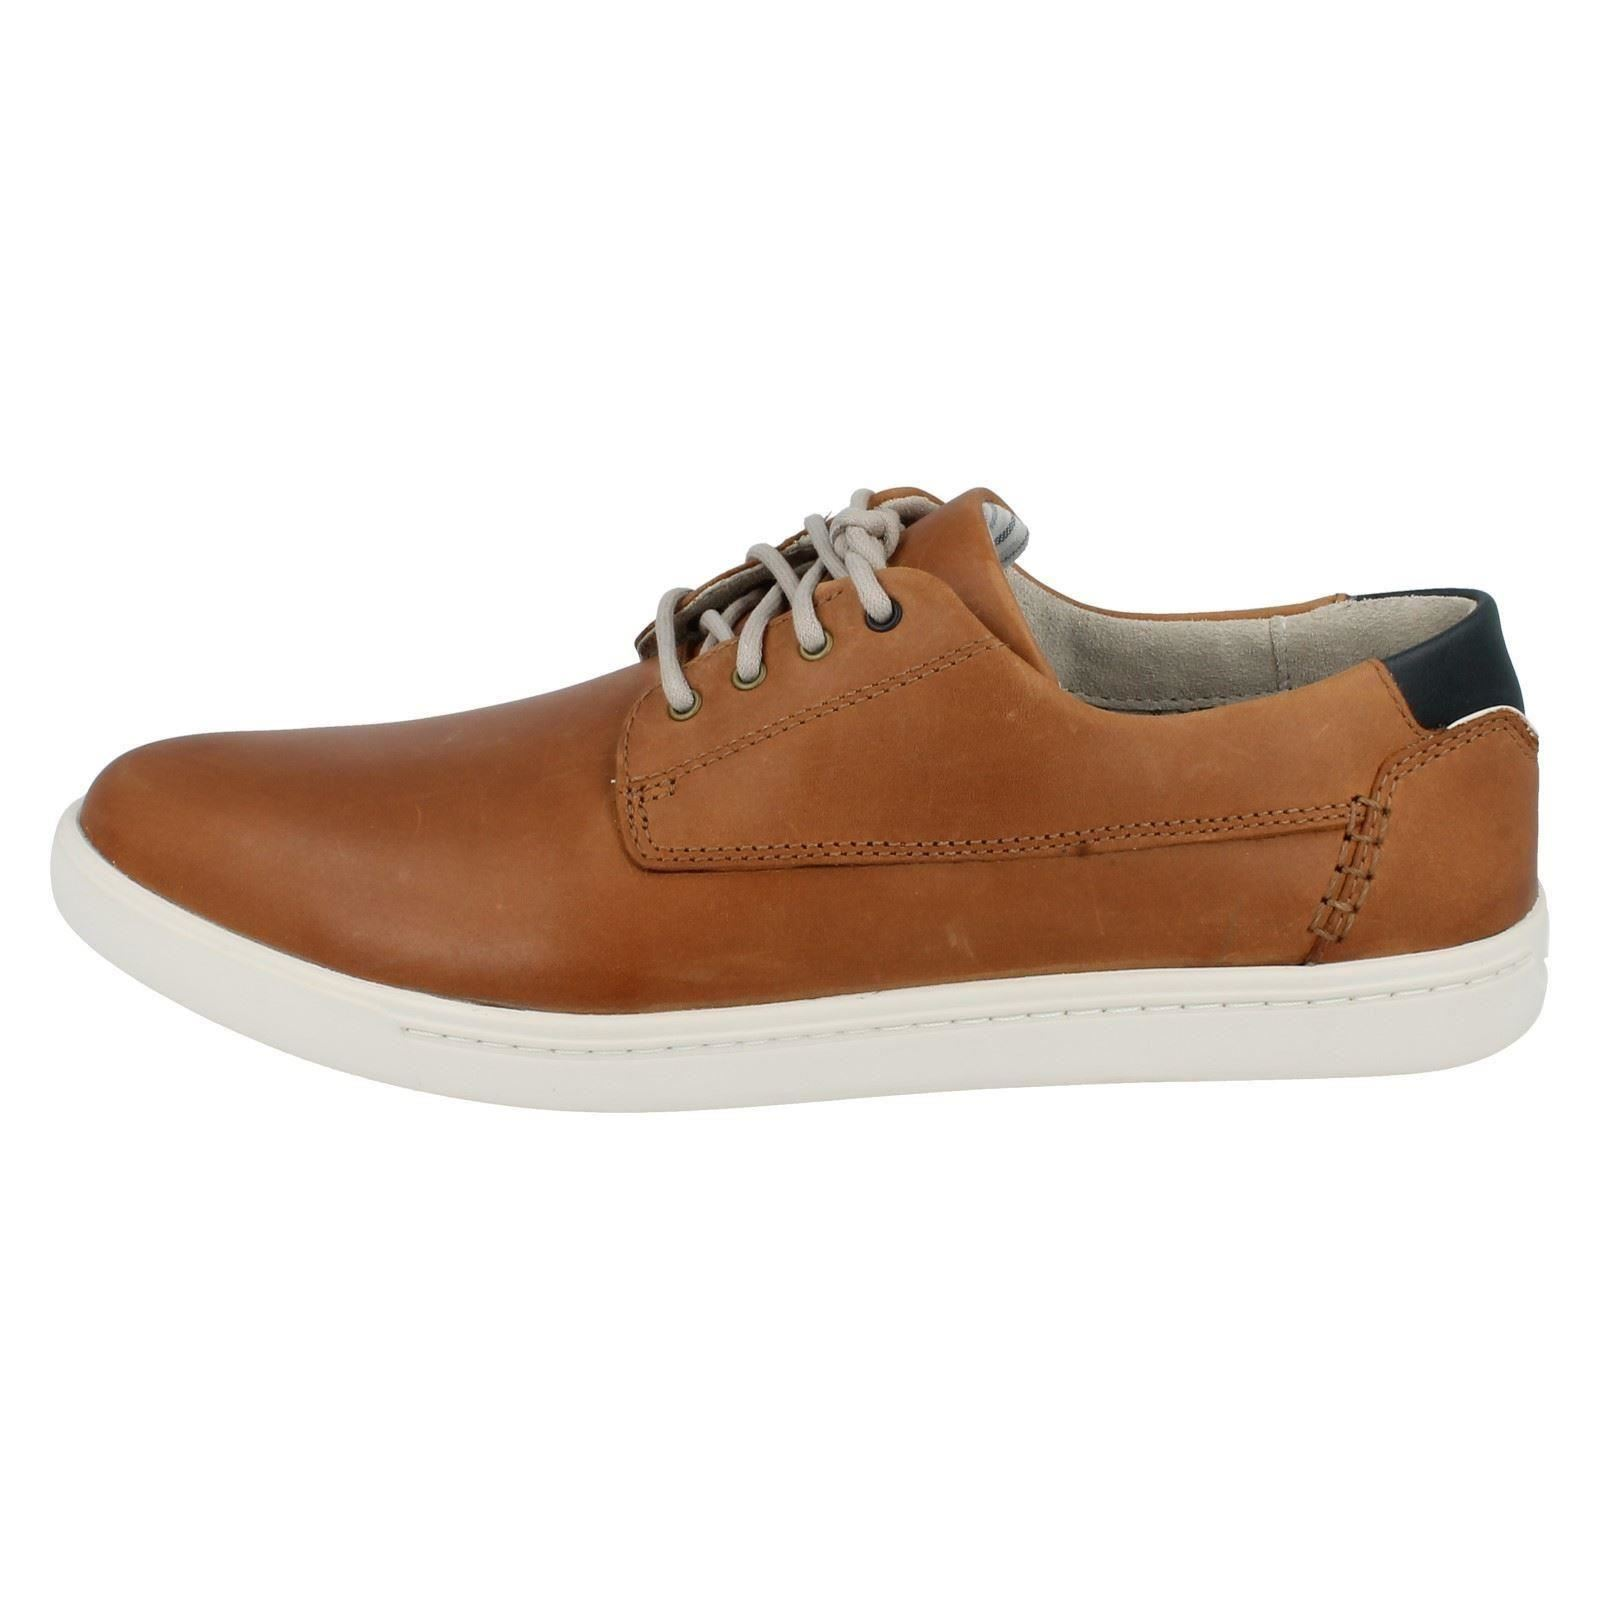 s clarks midcut casual sporty lace up shoes style